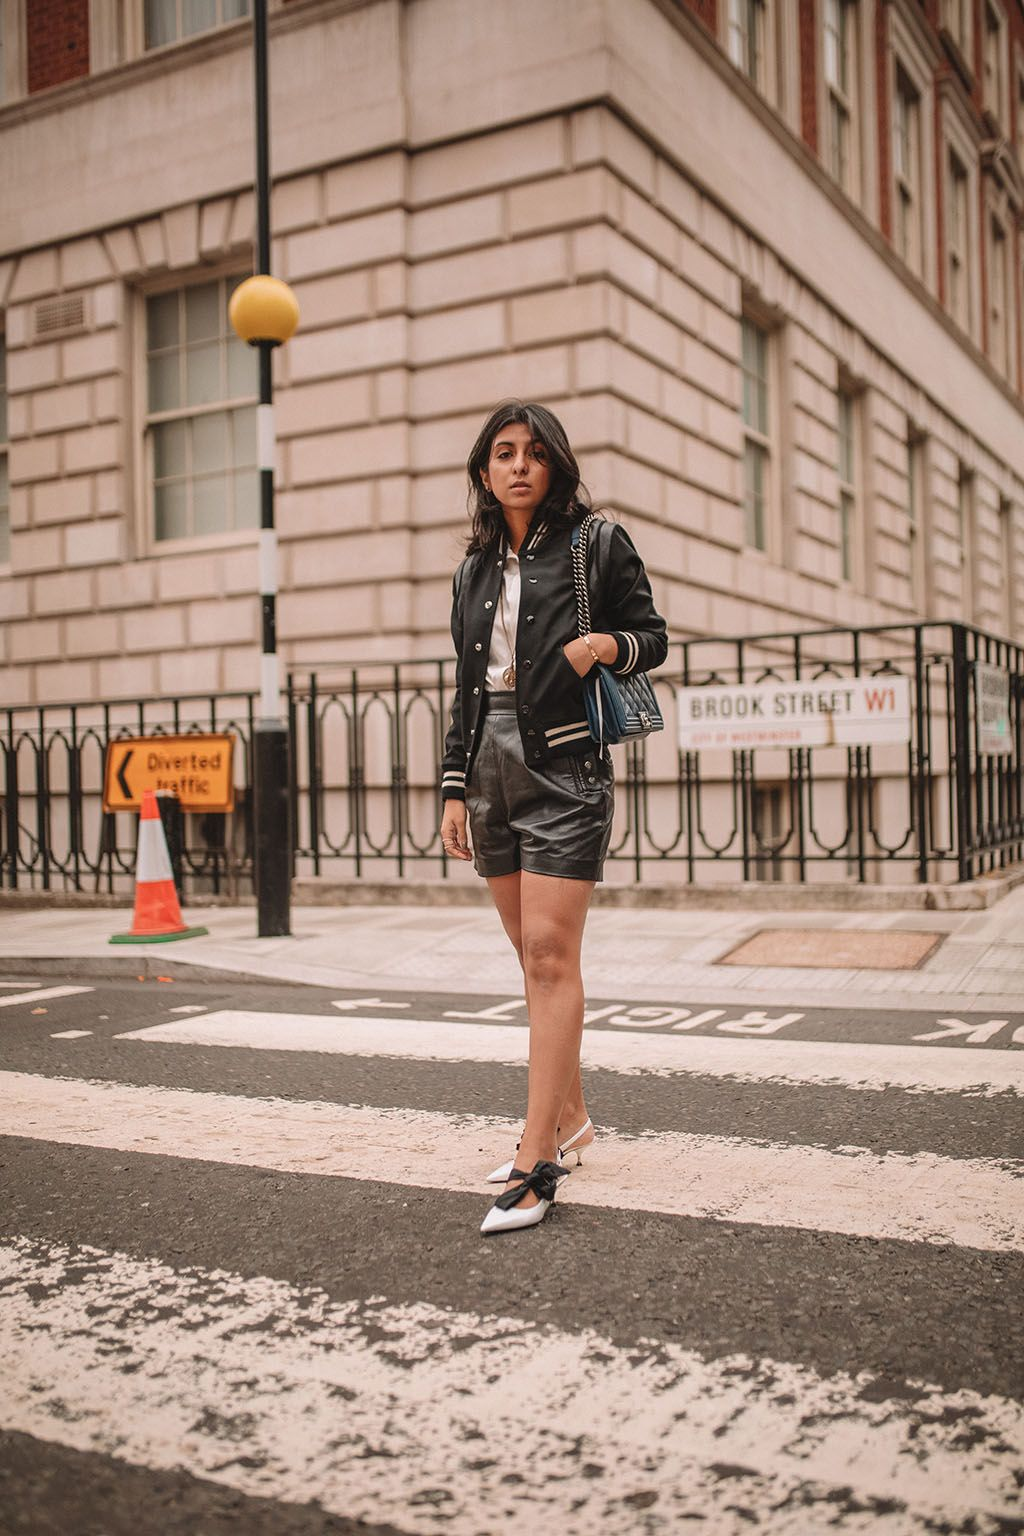 b1bb16c017d806 Luxury fashion blogger Shloka Narang of The Silk Sneaker shares how to  style a trending piece for autumn winter 2018, leather shorts, featuring  Chanel, ...